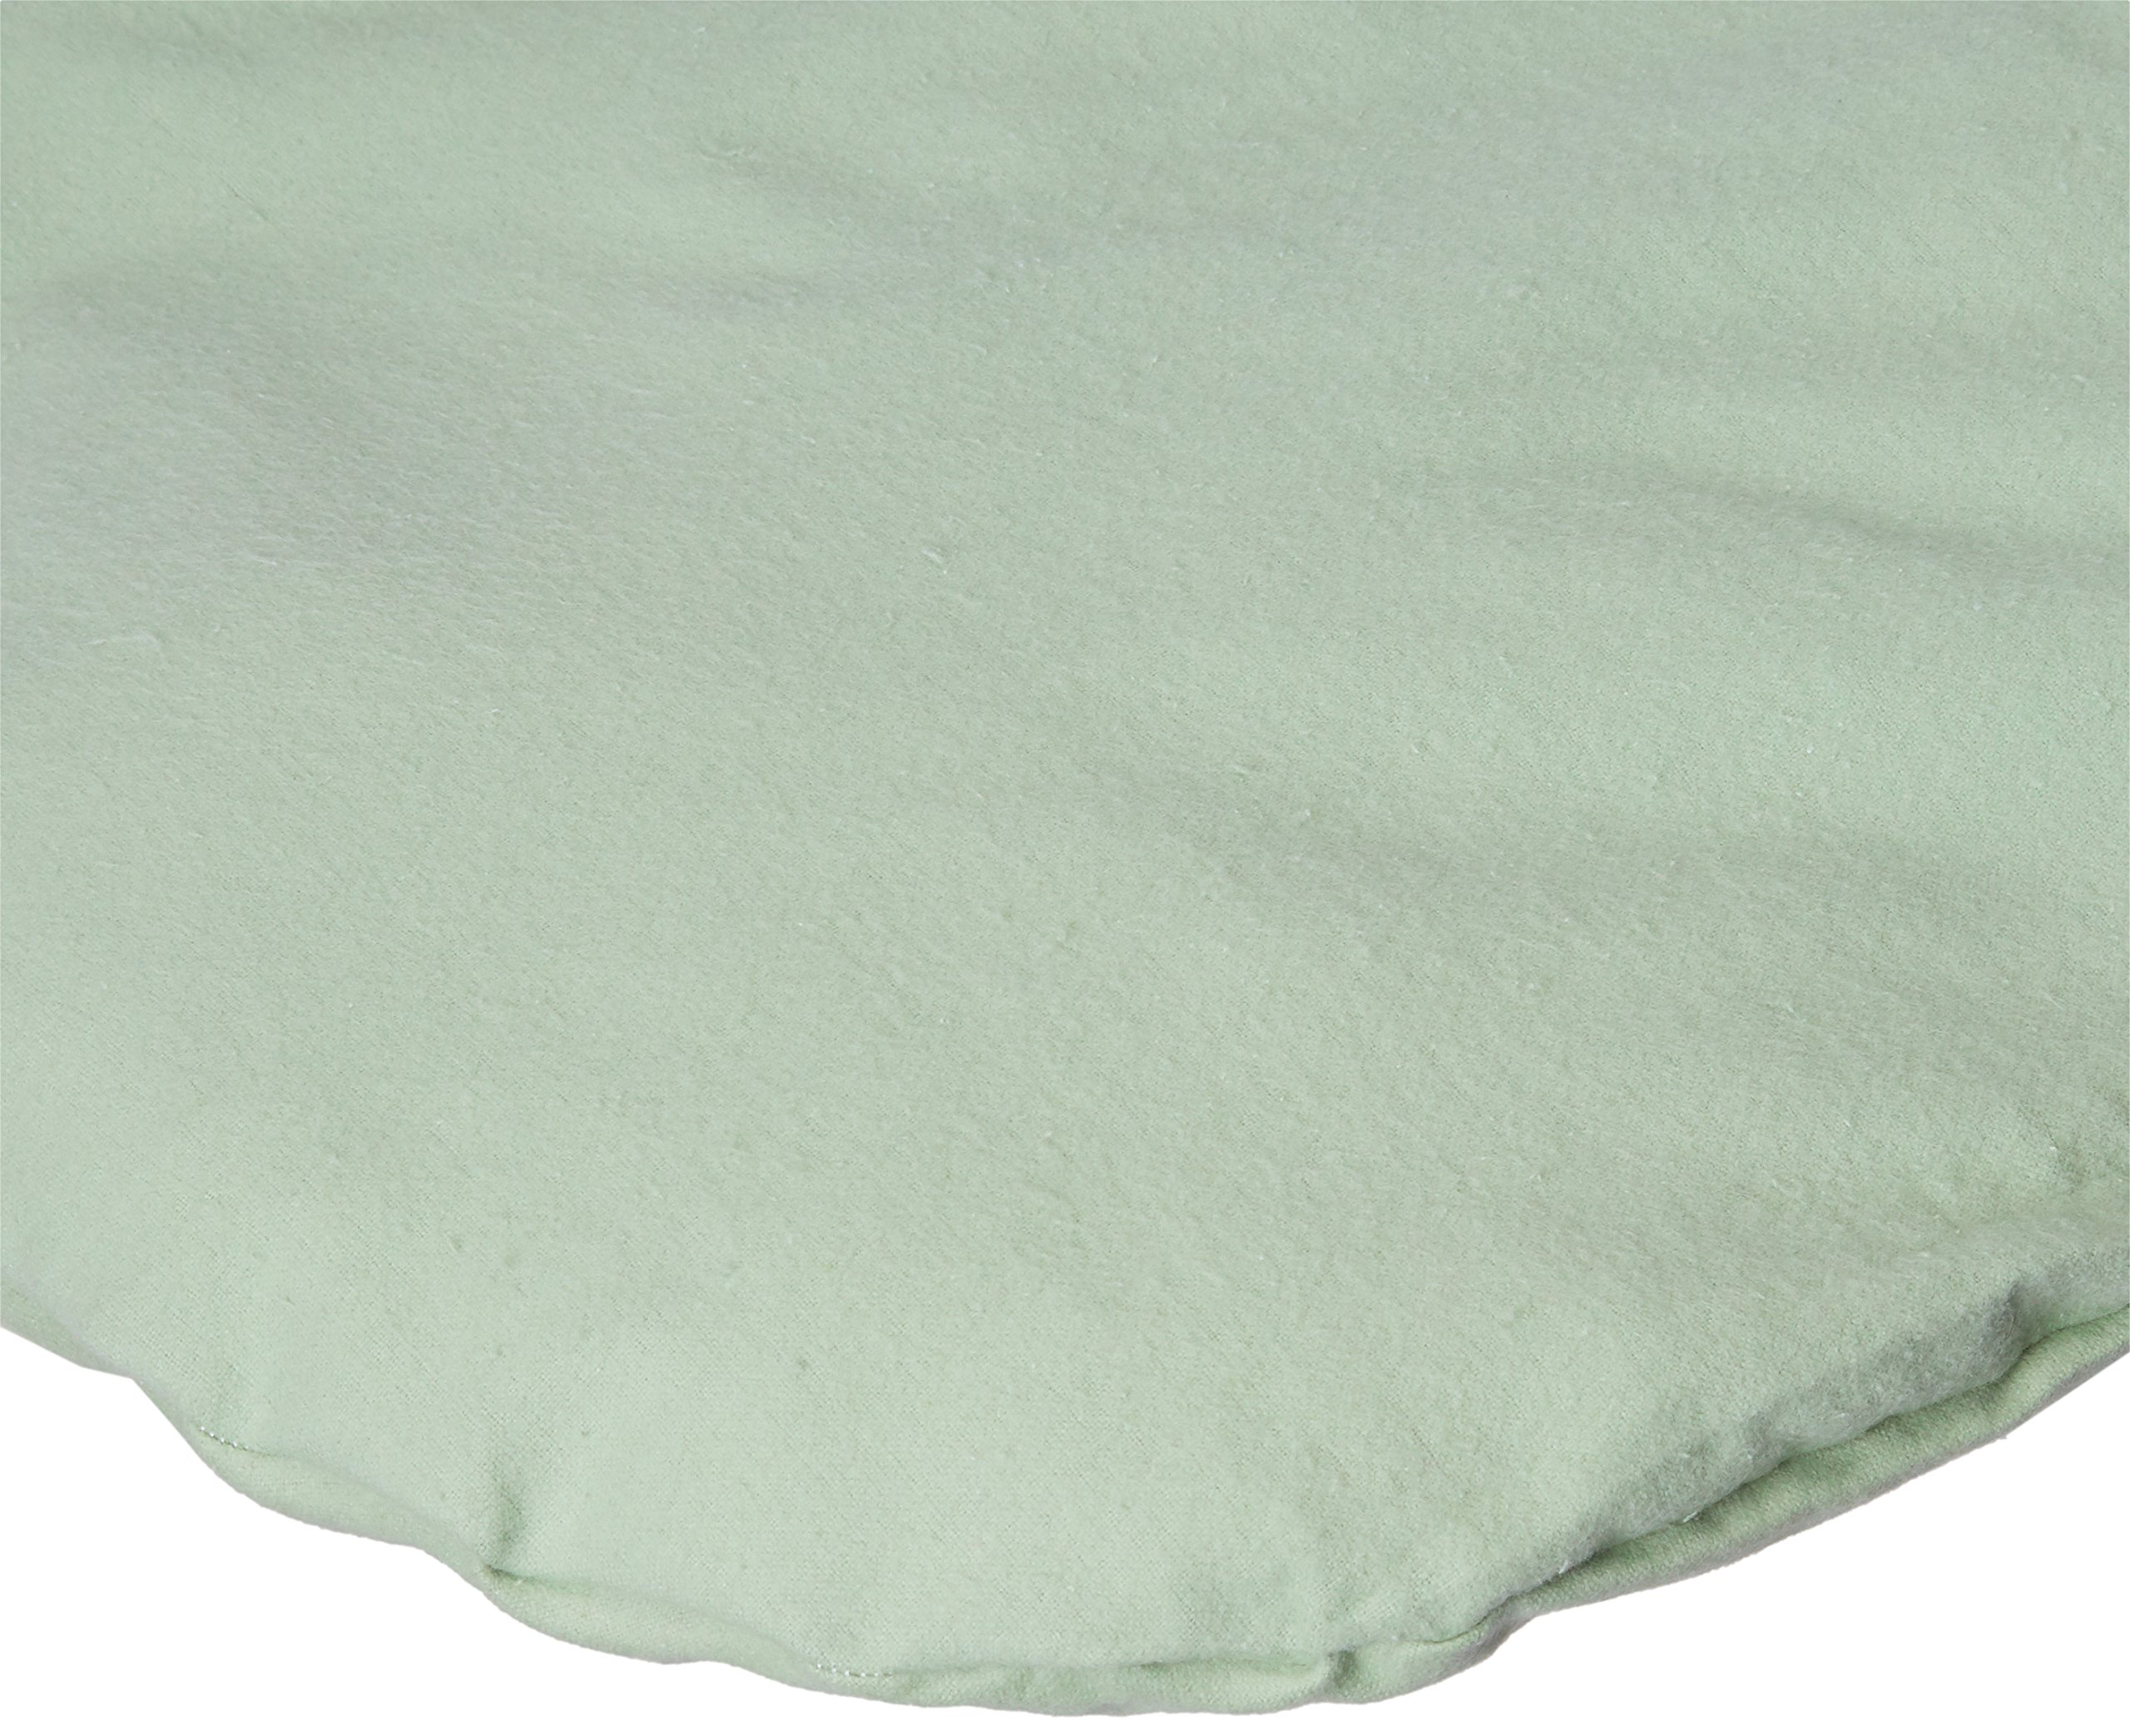 SheetWorld Fitted Bassinet Sheet (Fits Halo Bassinet Swivel Sleeper) - Flannel - Sage - Made In USA